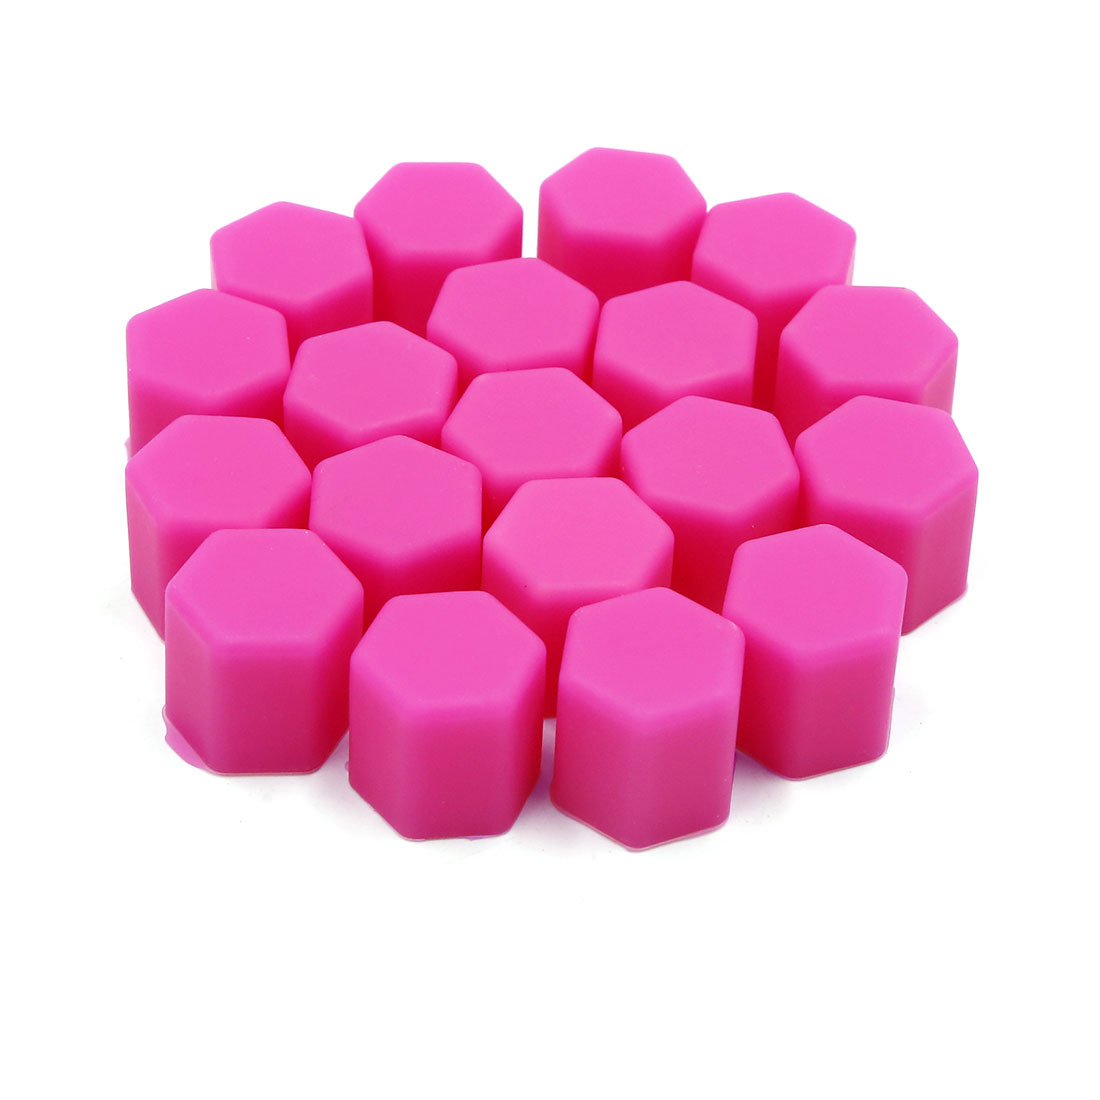 20pcs 15mm Rubber Car Wheel Tire Tyre Nut Screw Cover Caps Hub Protector Pink